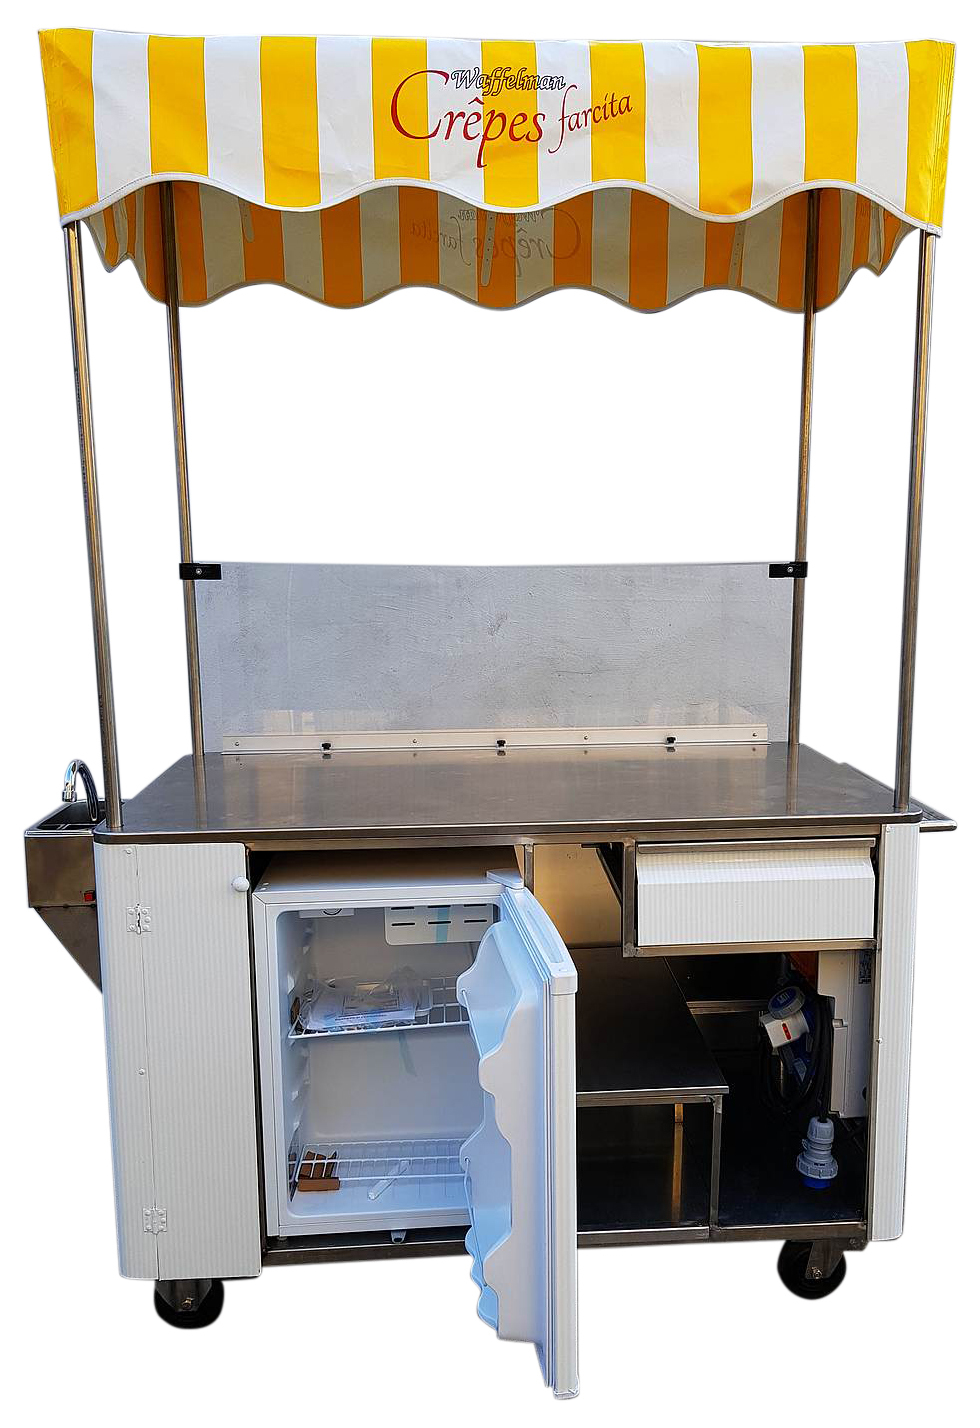 CARRELLO_A_SPINTA_PUSH_CART_per_CREPES_e_WAFFEL_06